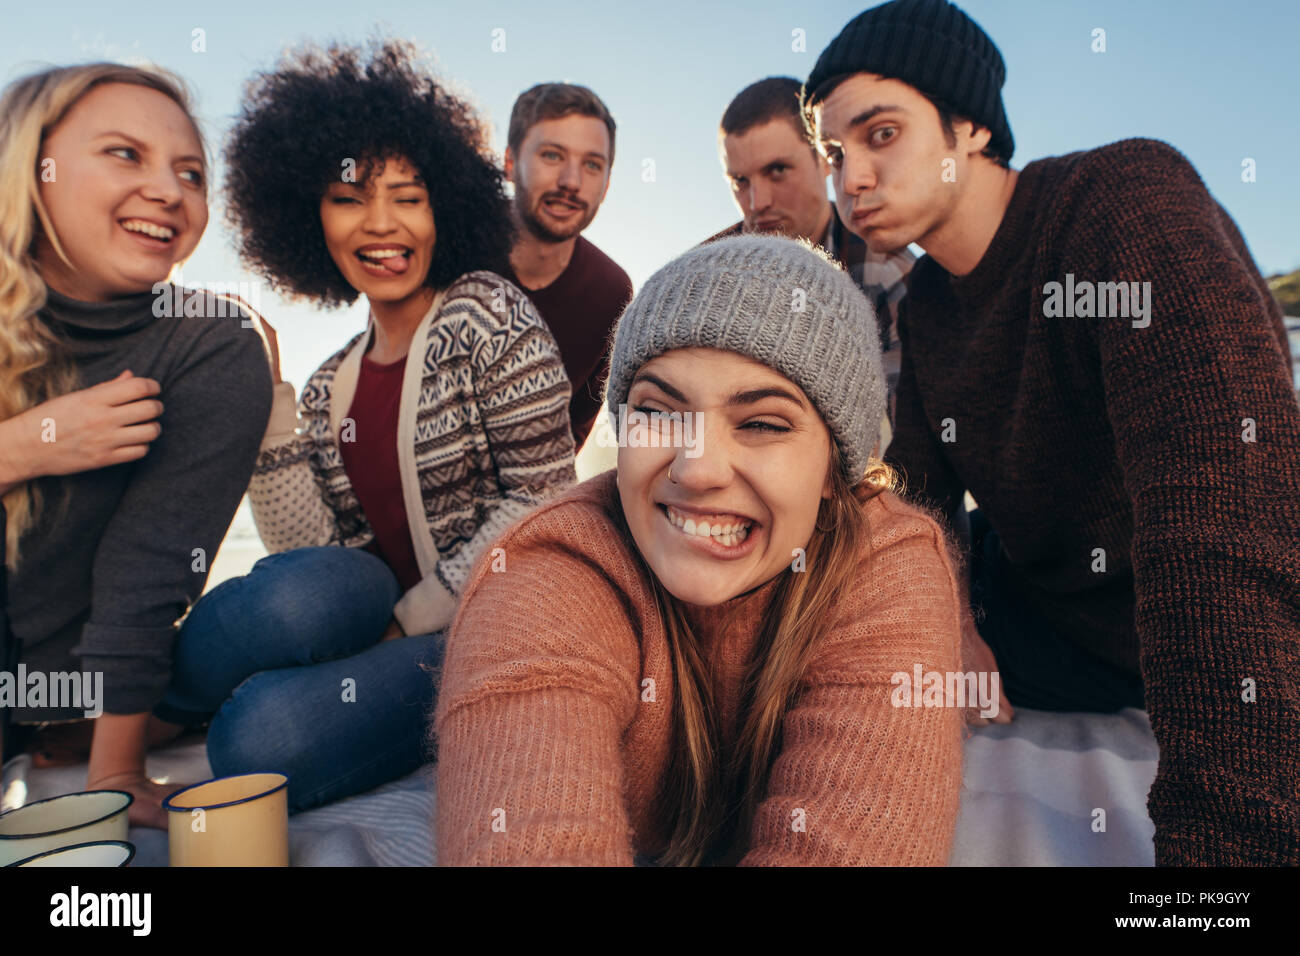 Group of young people making funny faces while taking selfie on the beach. Young people enjoying together at the beach making a self portrait. - Stock Image